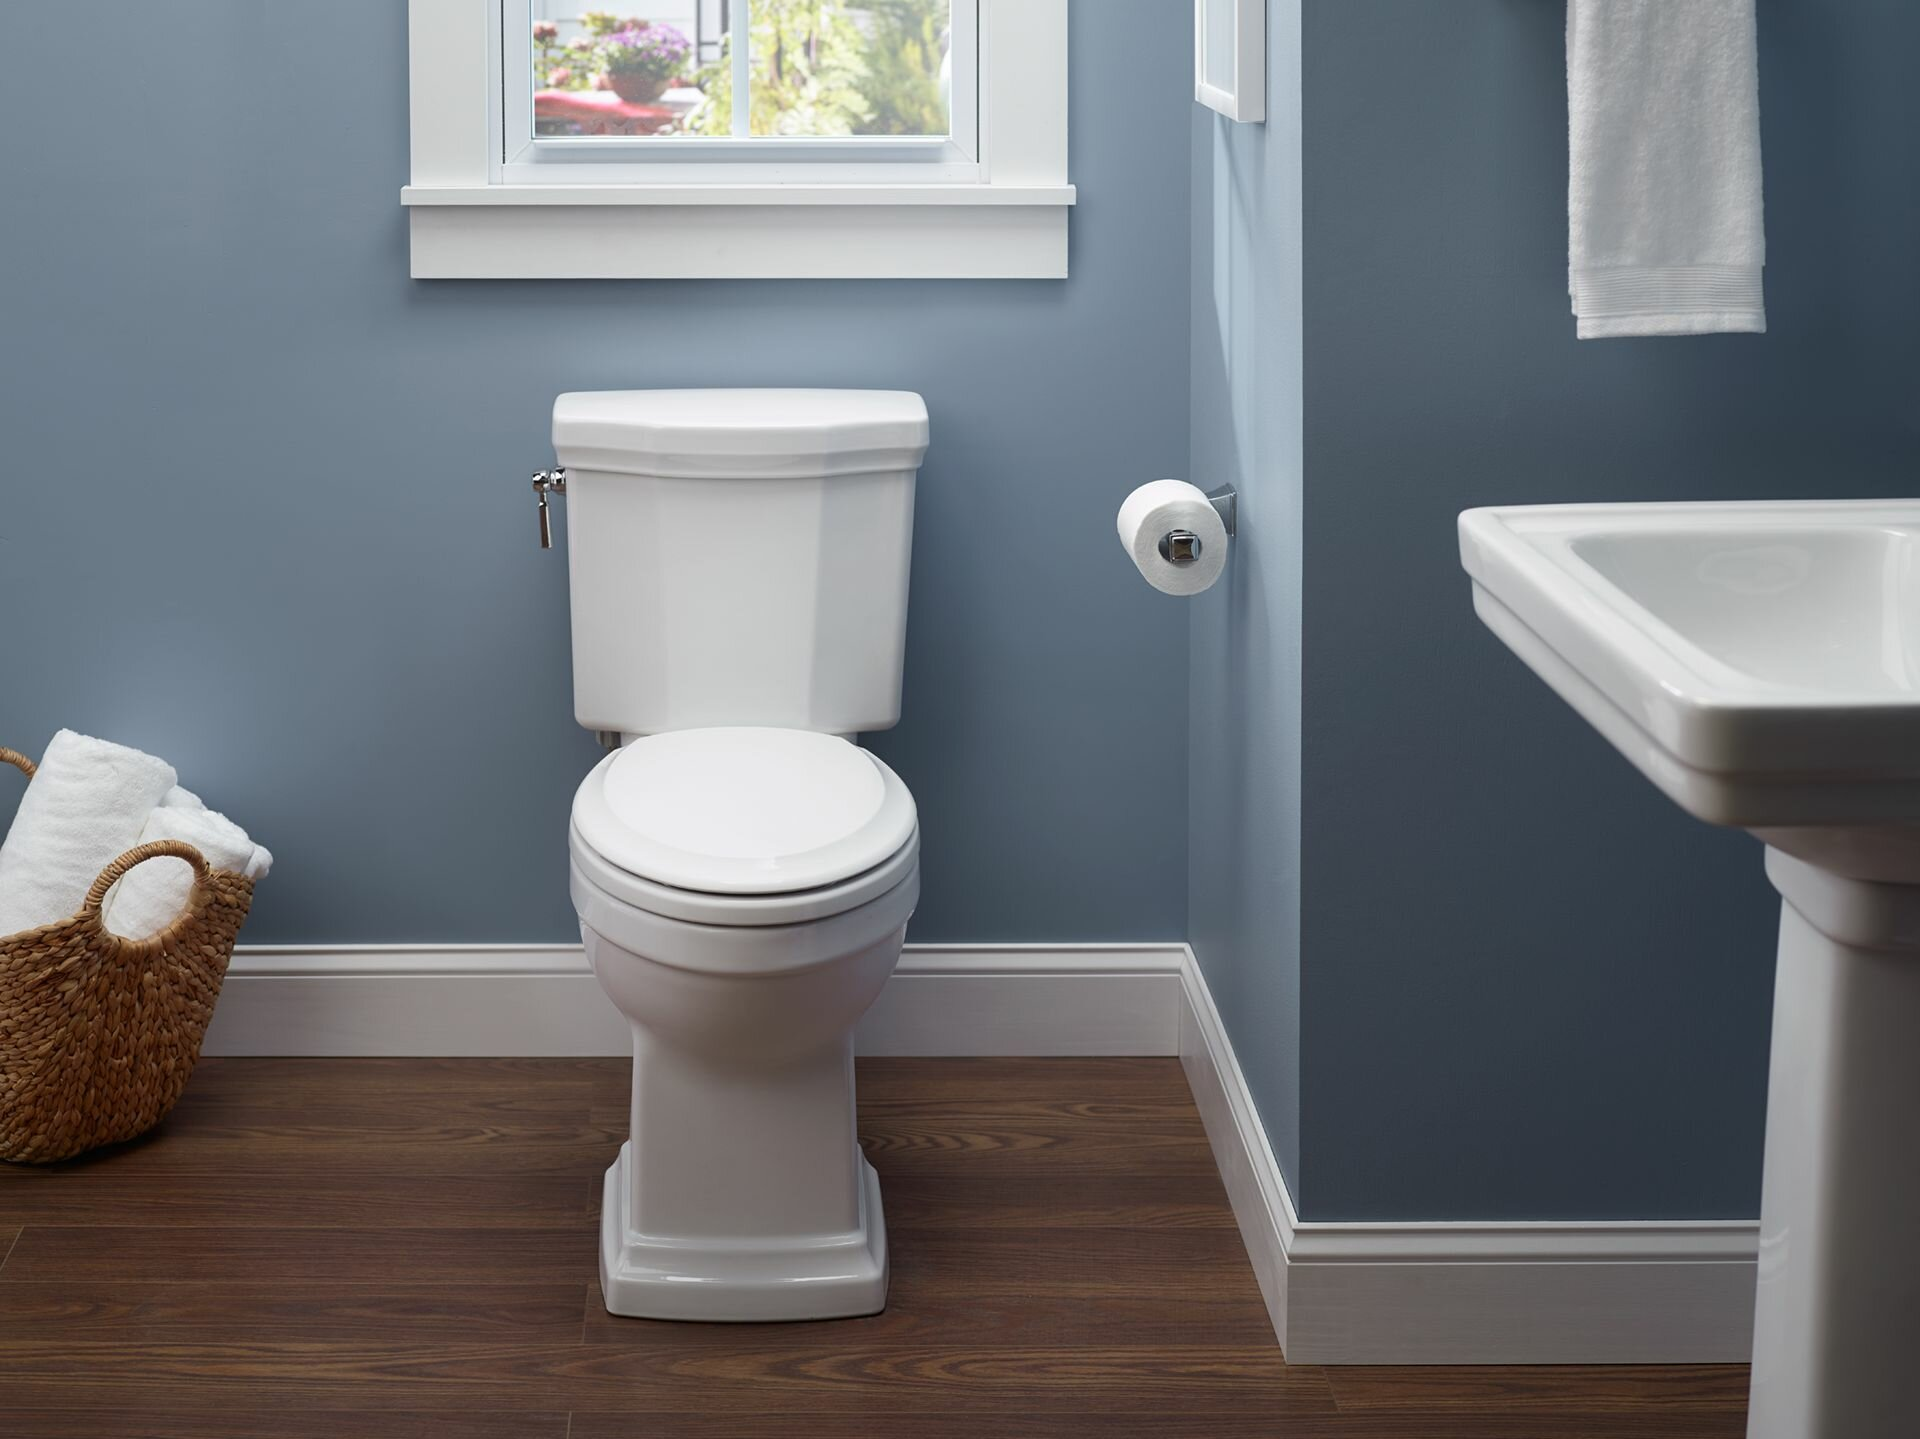 Gpf Elongated Two Piece Toilet Seat